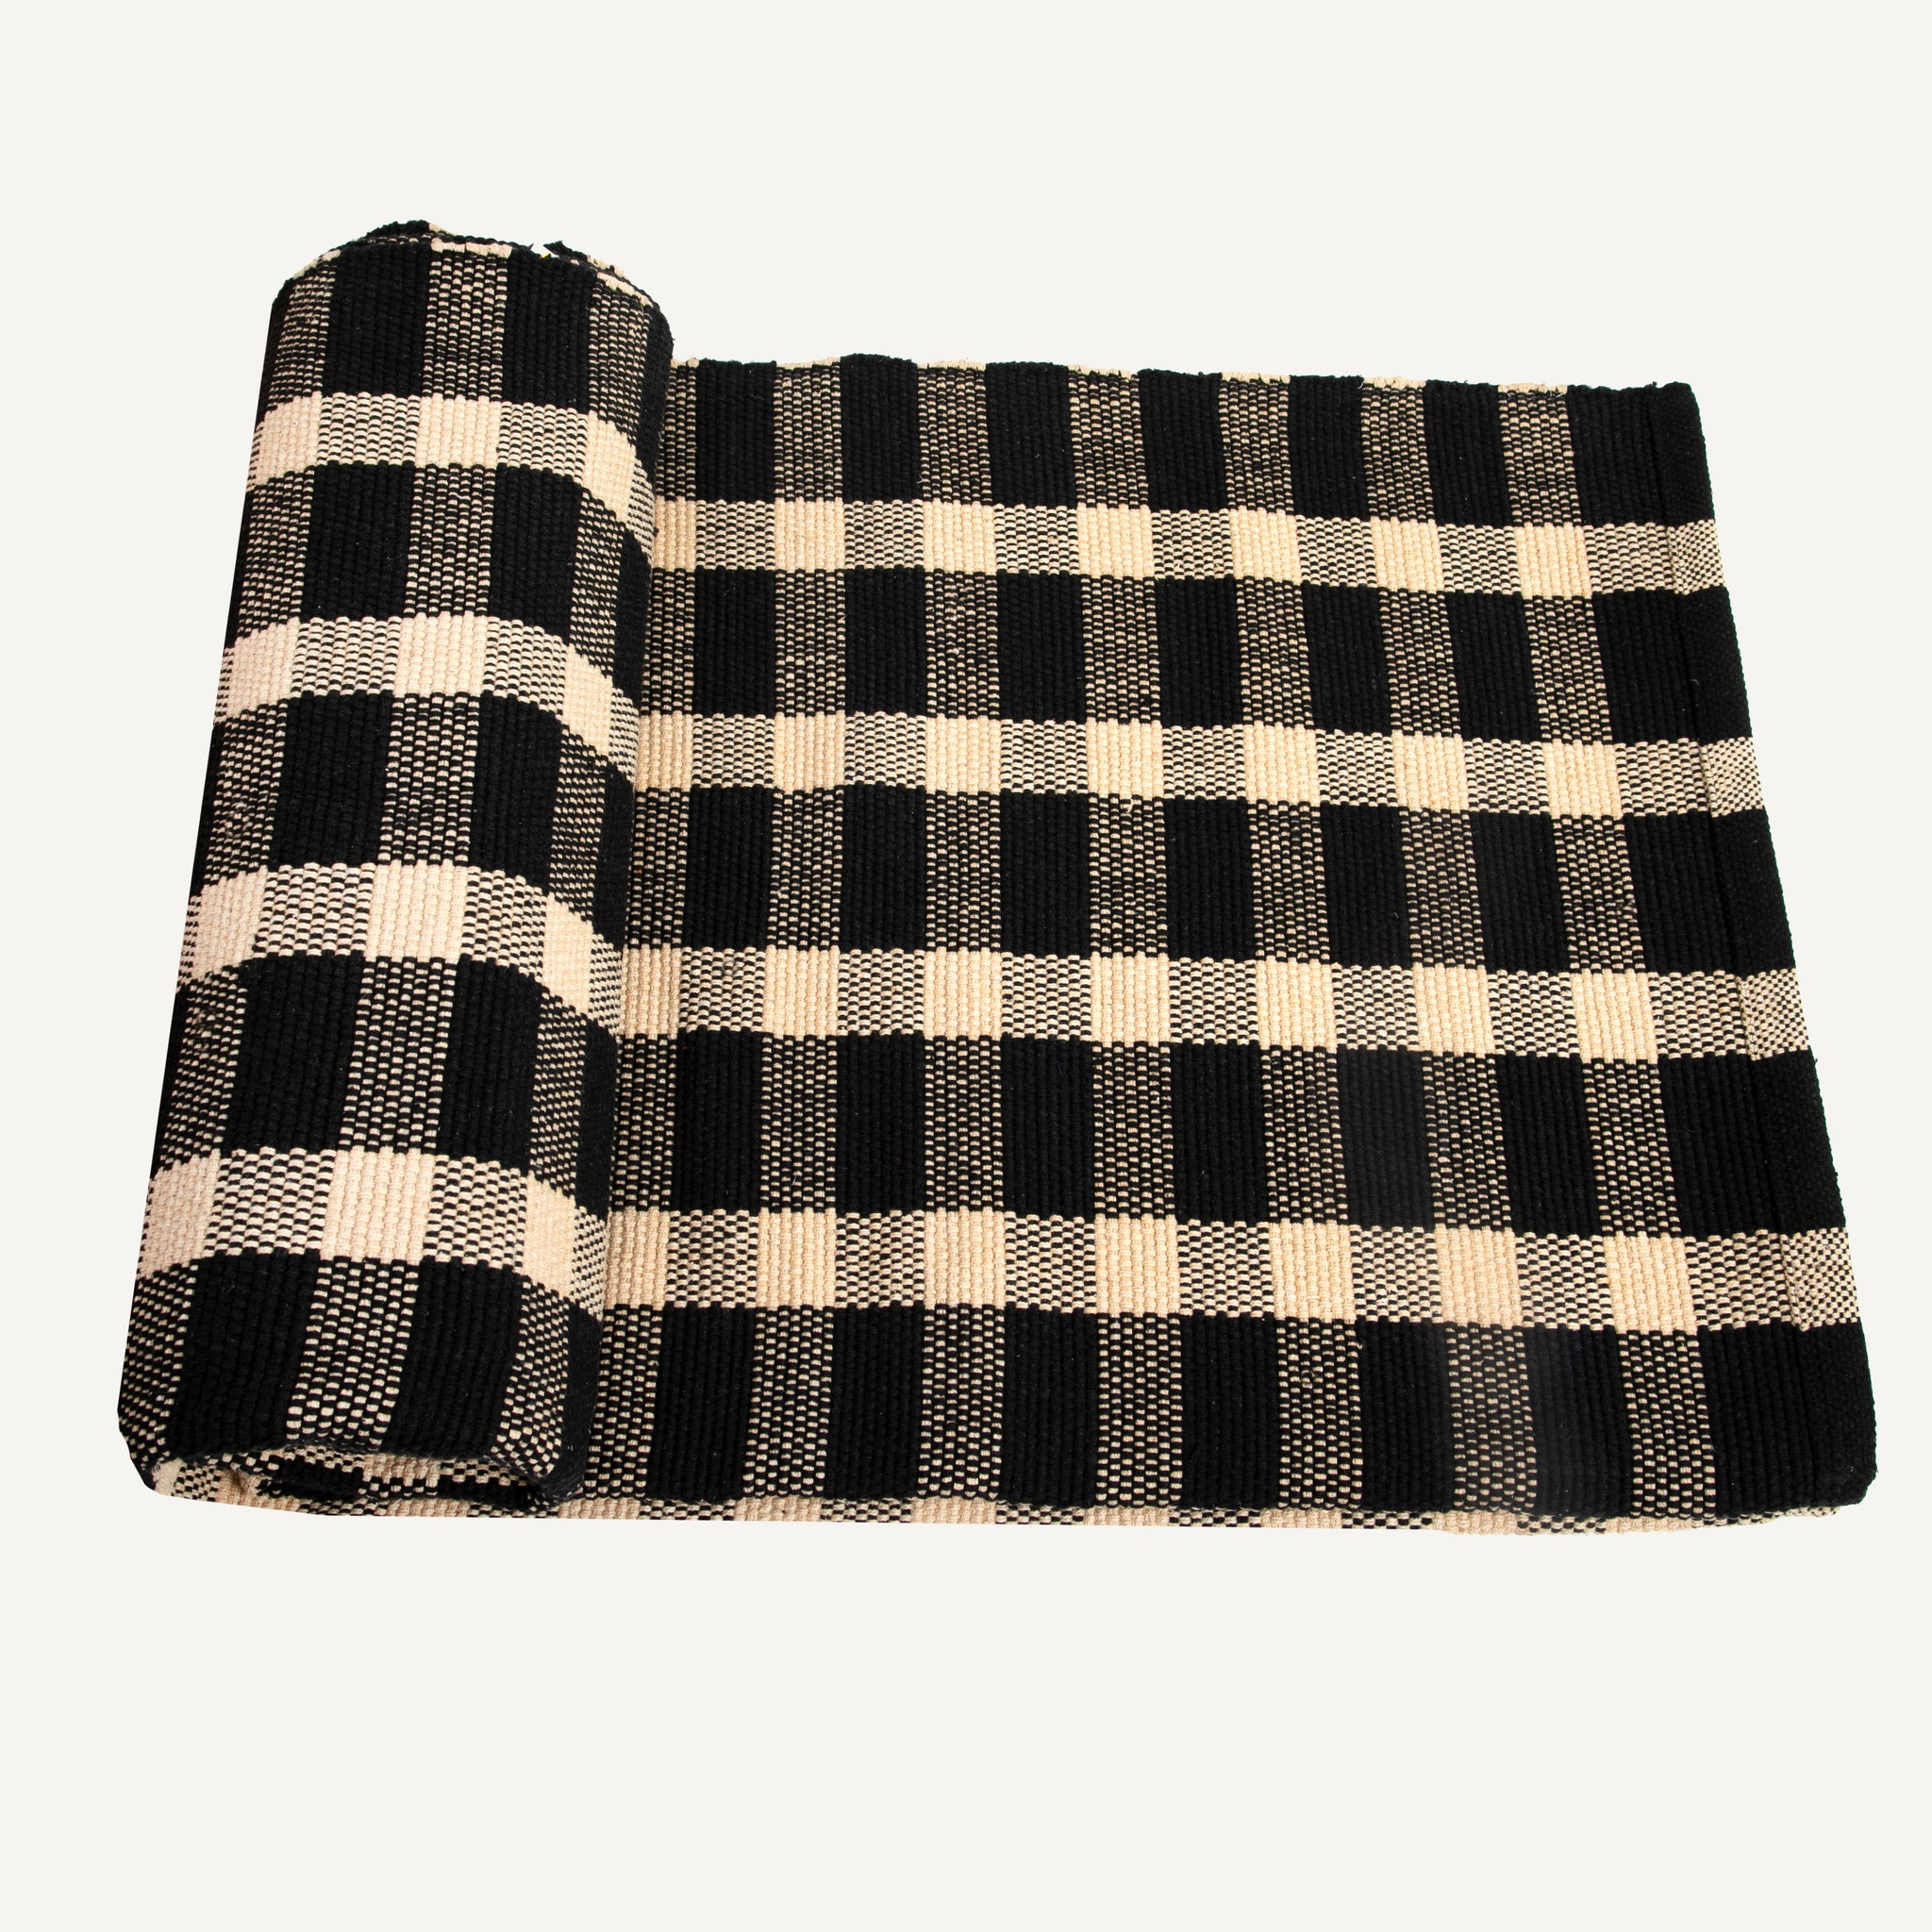 HAND-LOOMED CHECK RUGS